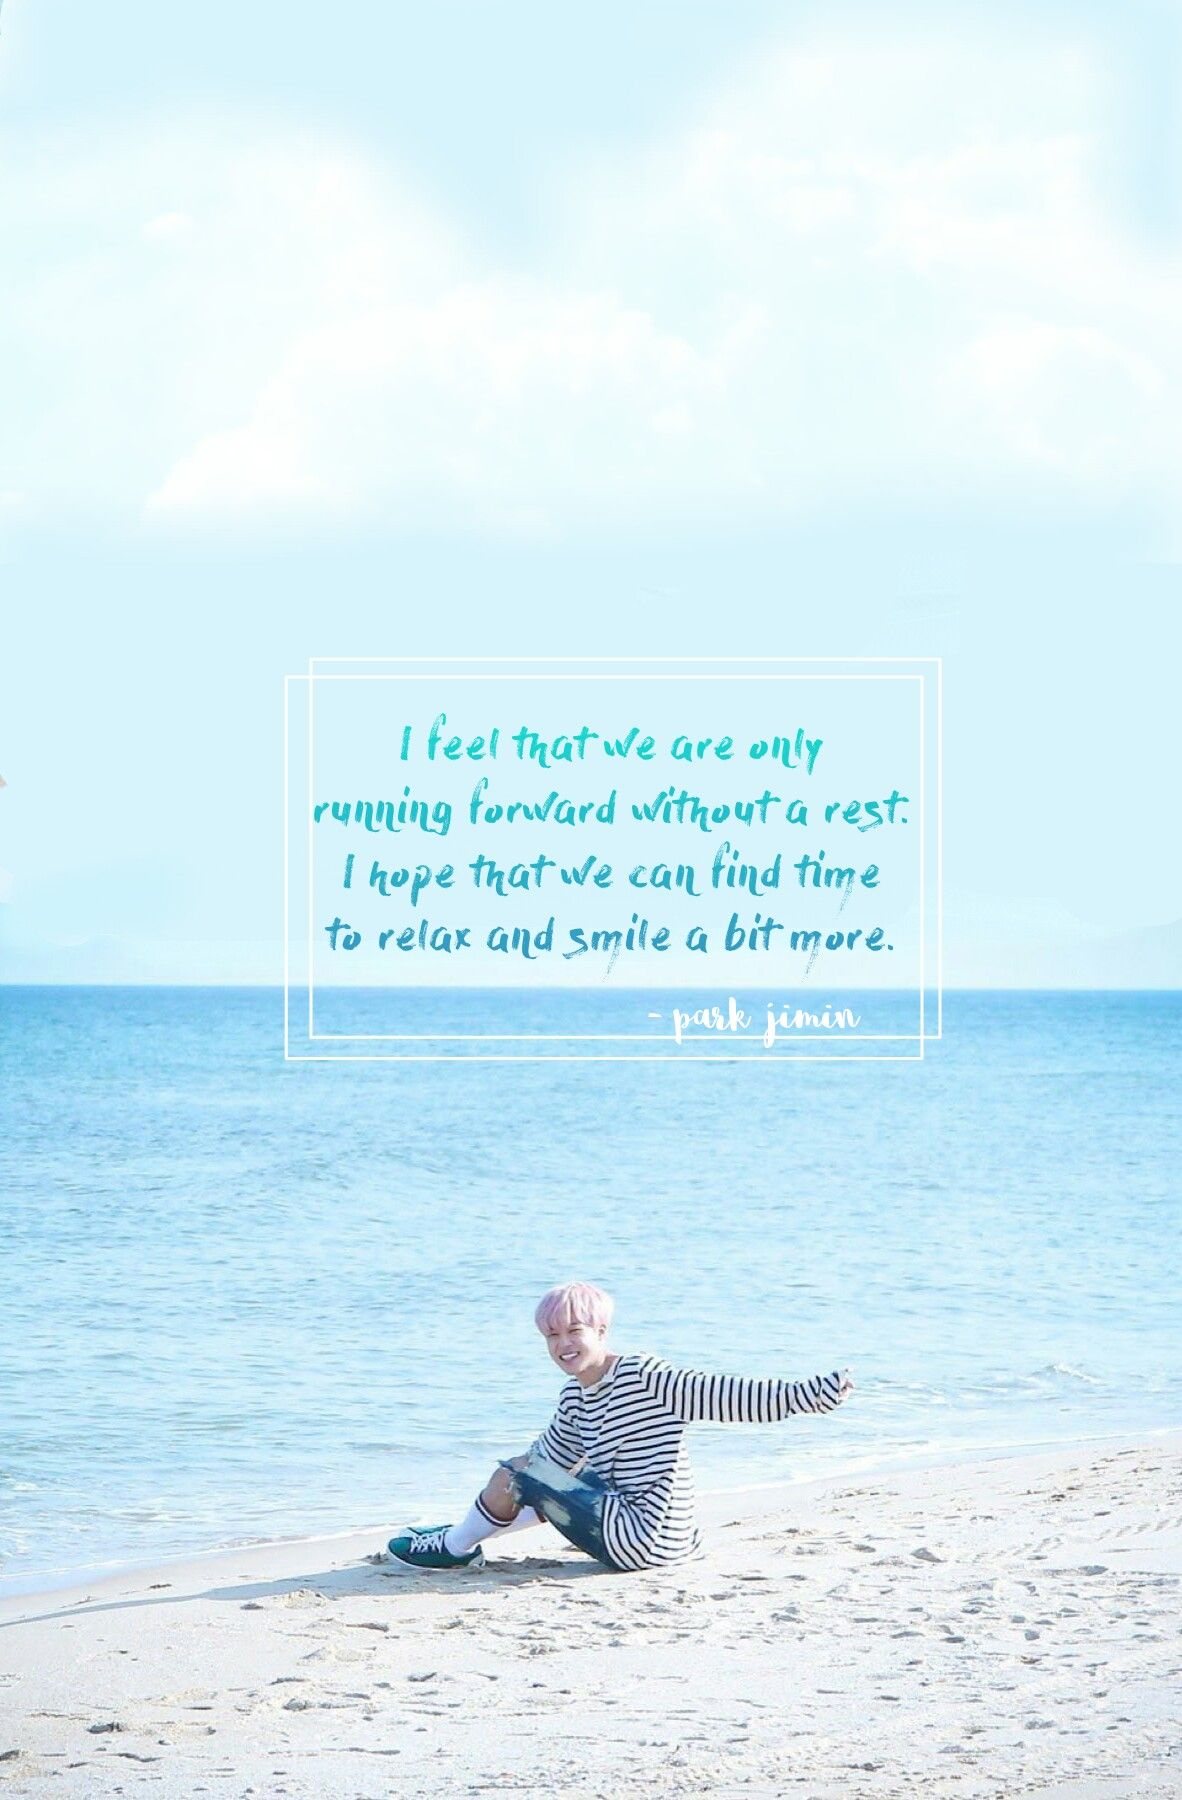 bts jimin quote ig milkookie bts lyrics